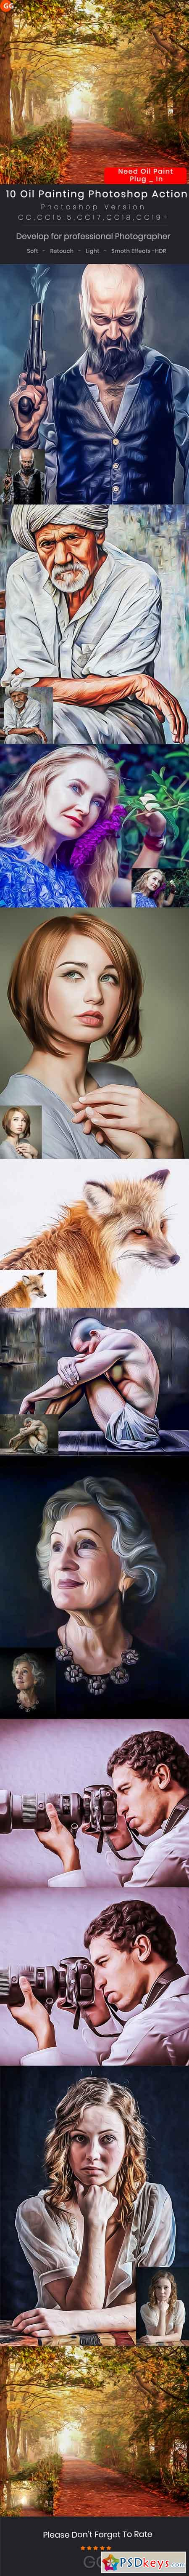 10 Oil Painting Photoshop Action 22851047